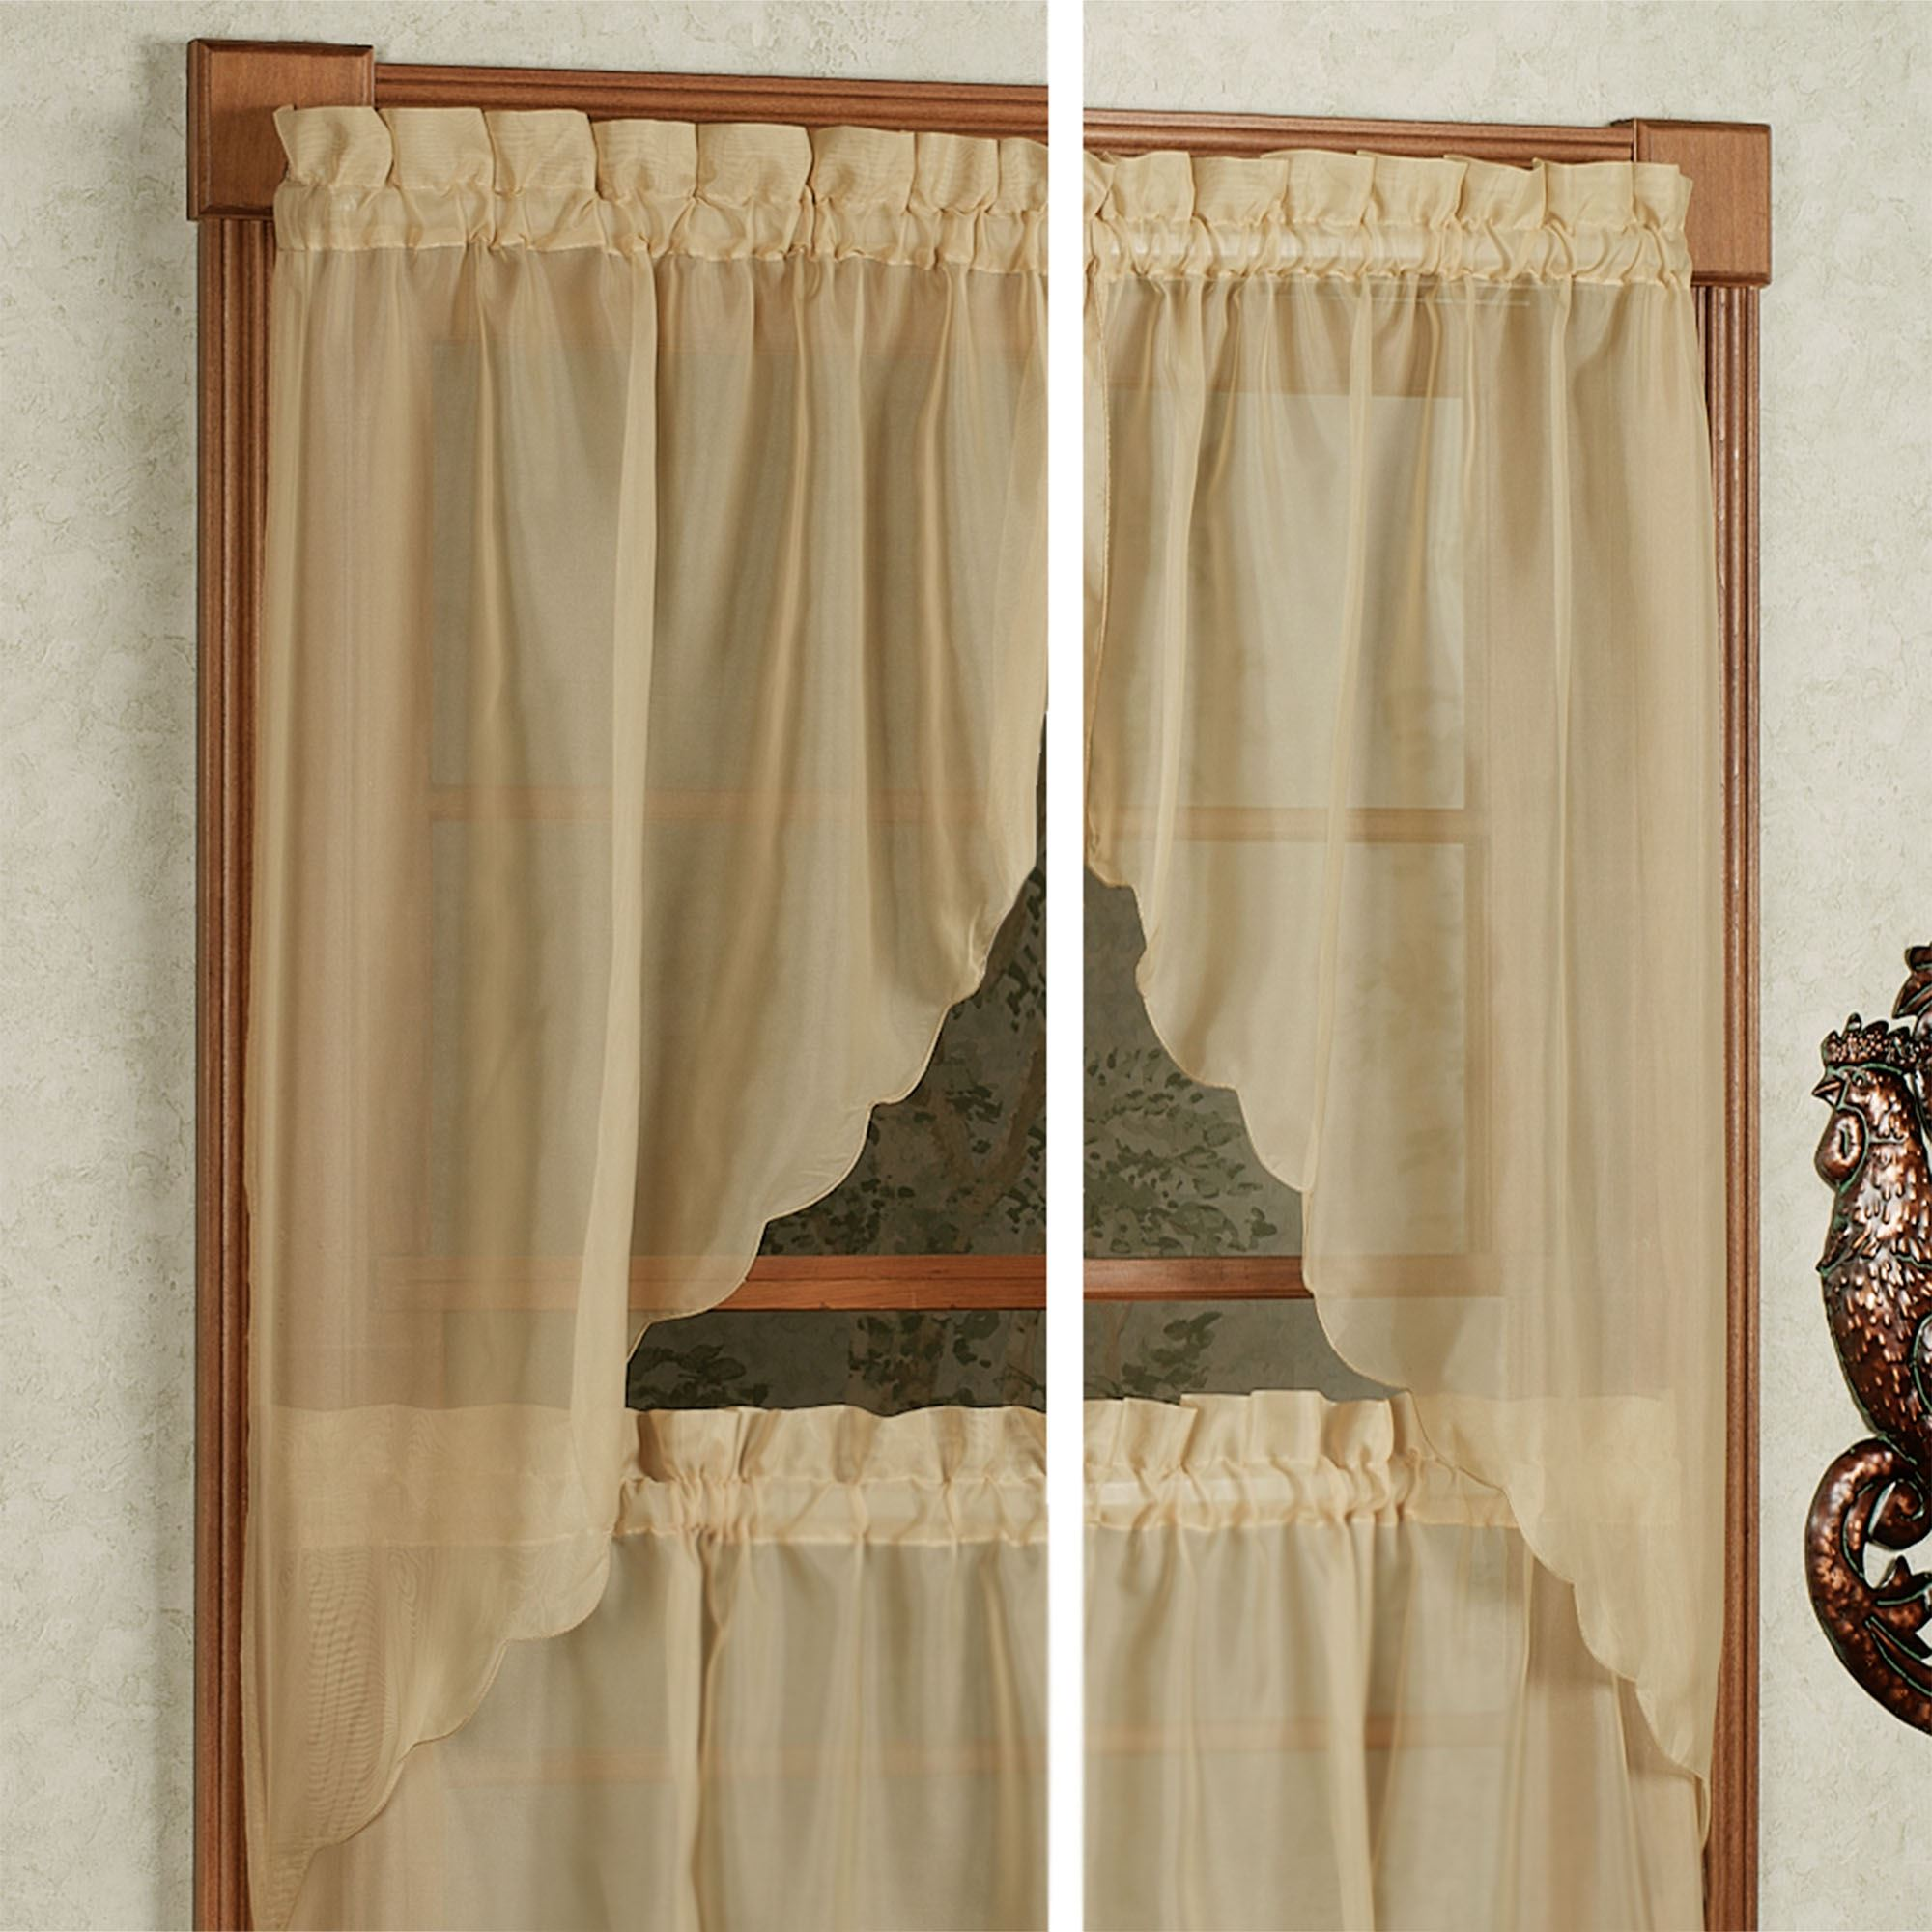 martinson pdx reviews curtain voile sheer wayfair of valance house scarf hampton window treatments